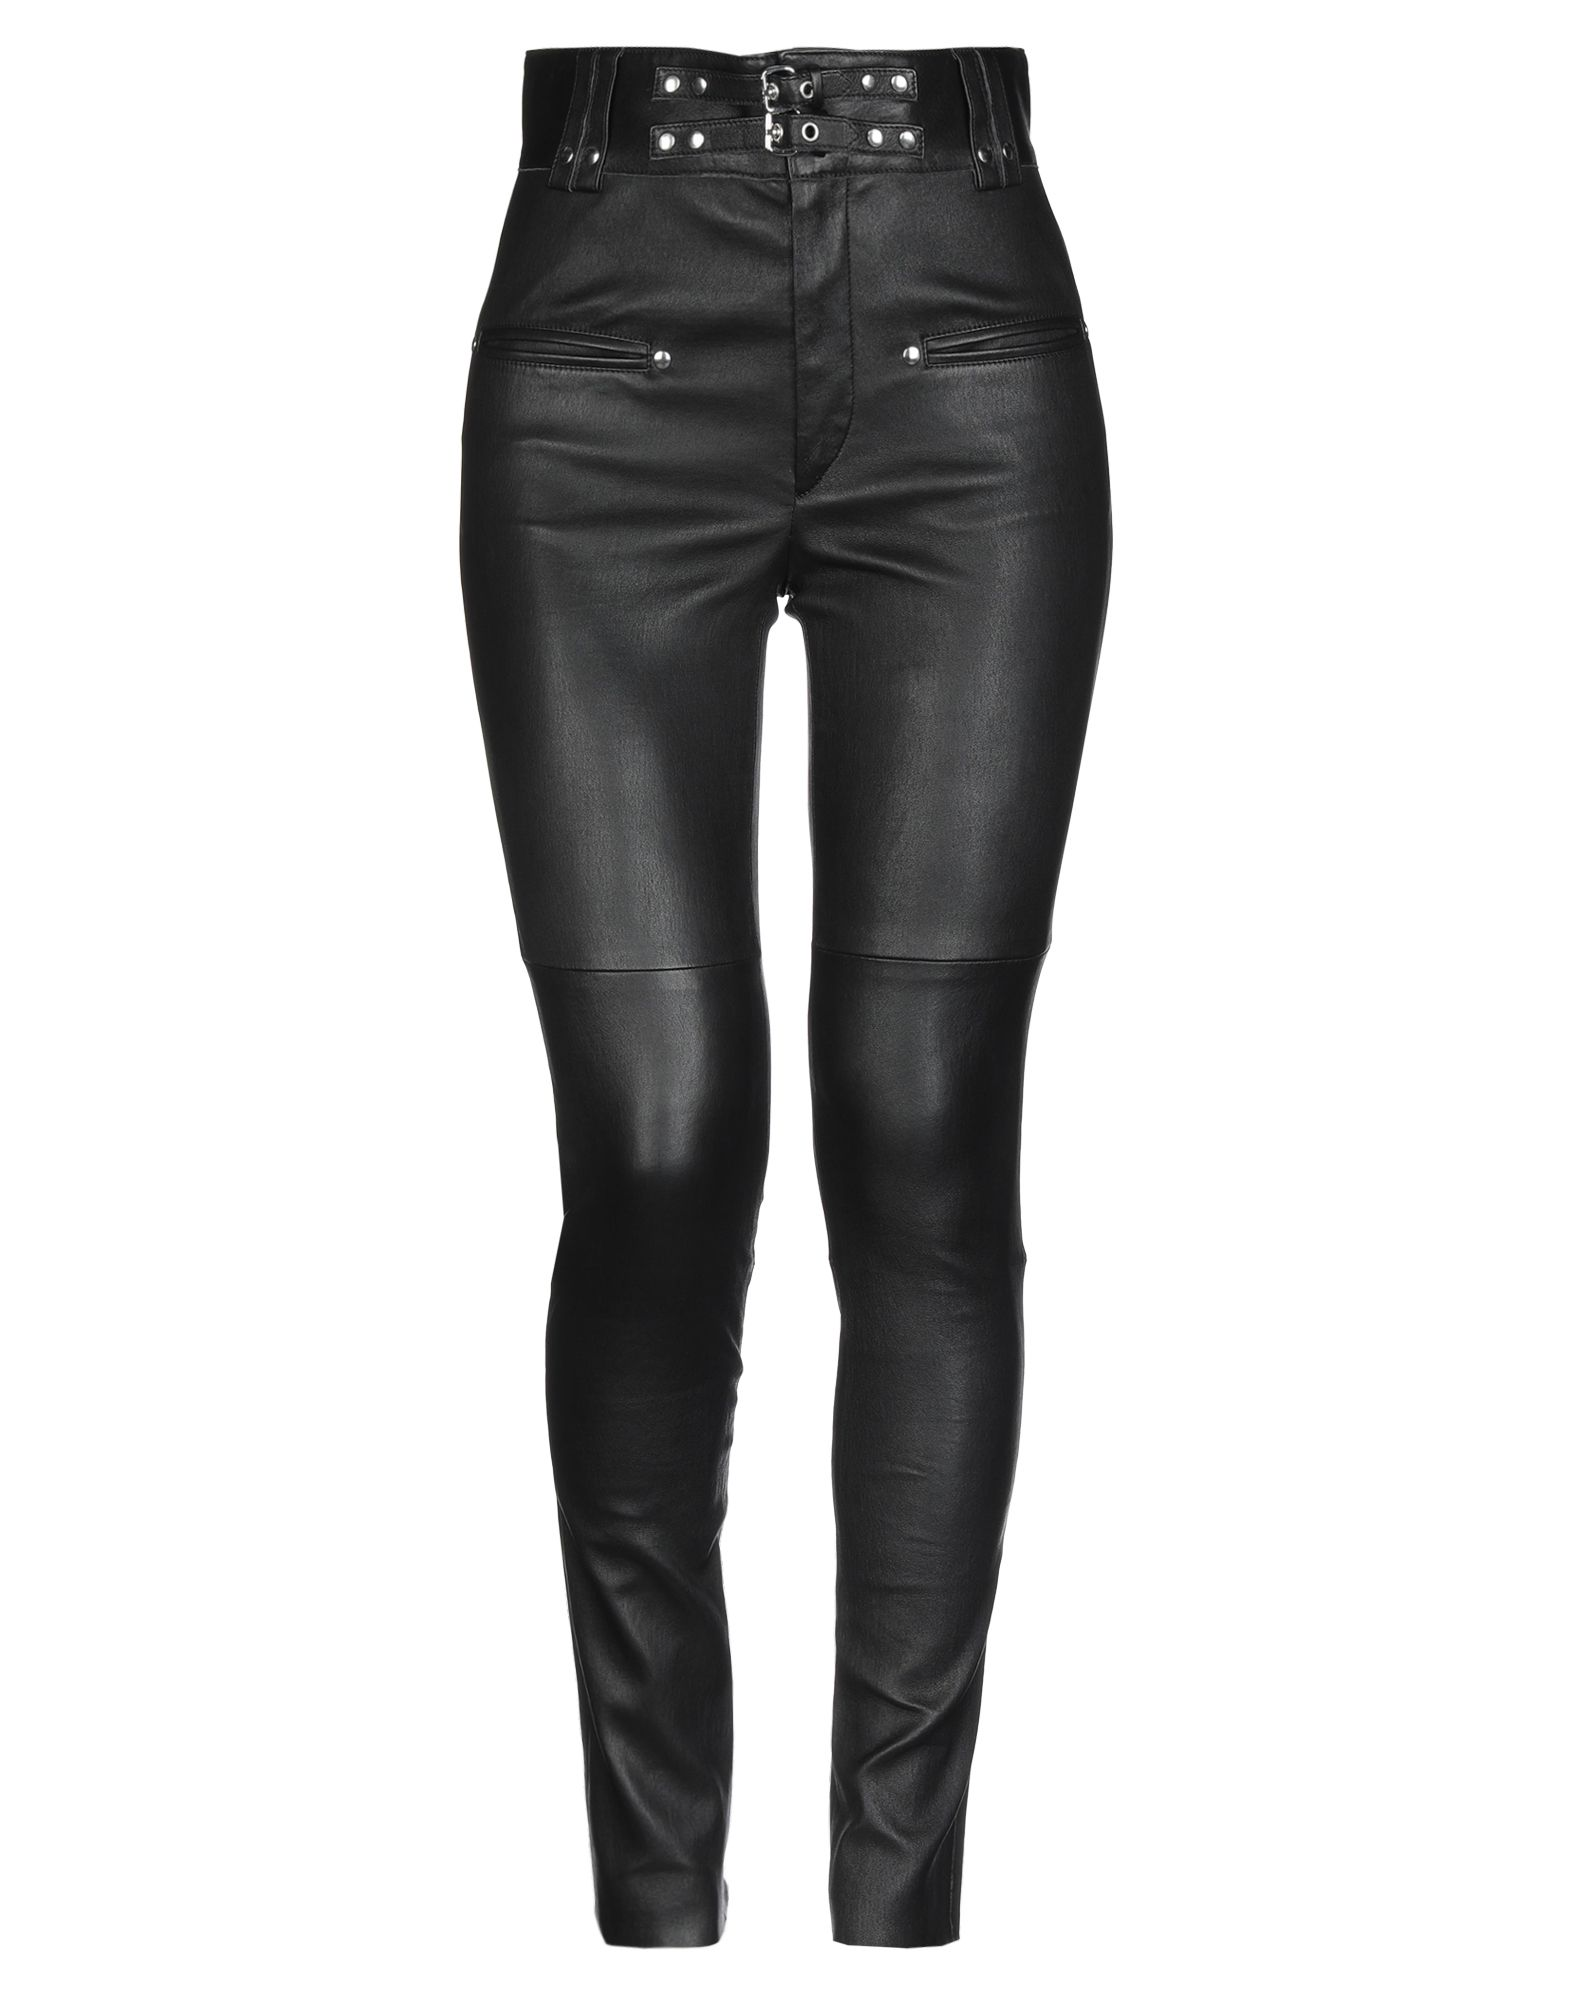 ISABEL MARANT Casual pants. leather, basic solid color, strap detailing, high waisted, slim fit, straight leg, snap-buttons, zip, multipockets, contains non-textile parts of animal origin, raw-cut hem. 100% Lambskin